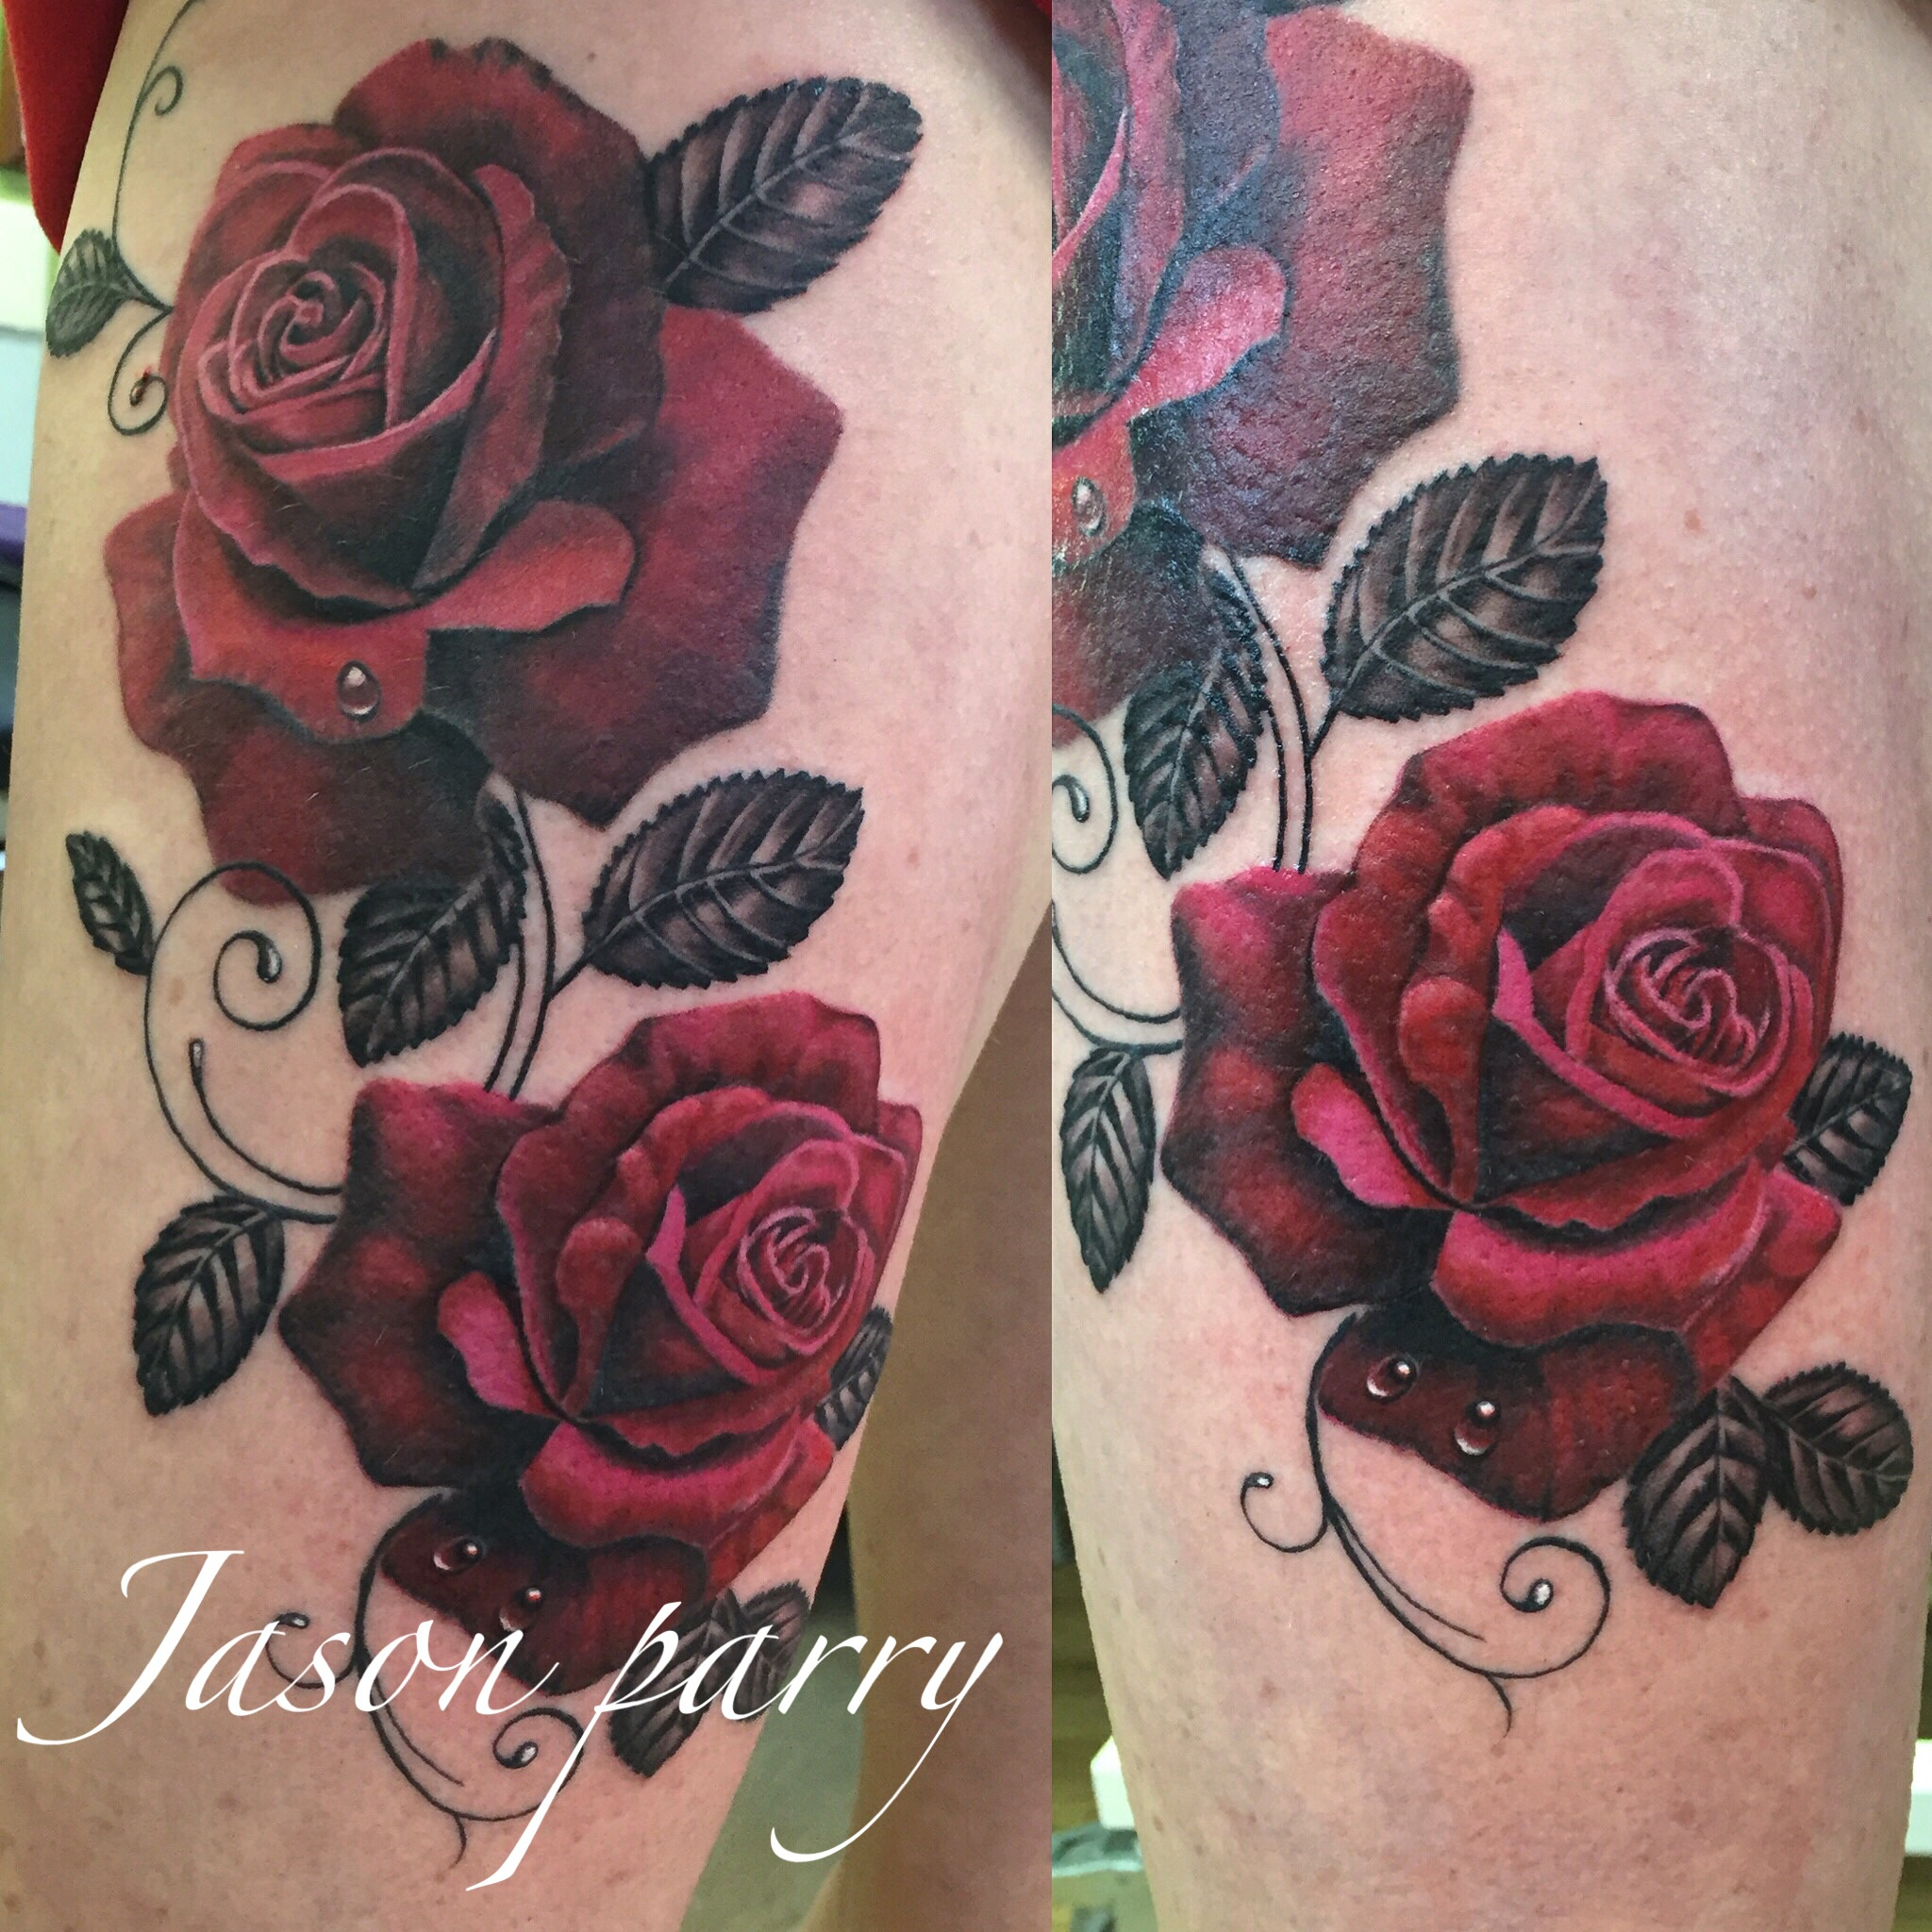 red rose tattoo jason parry